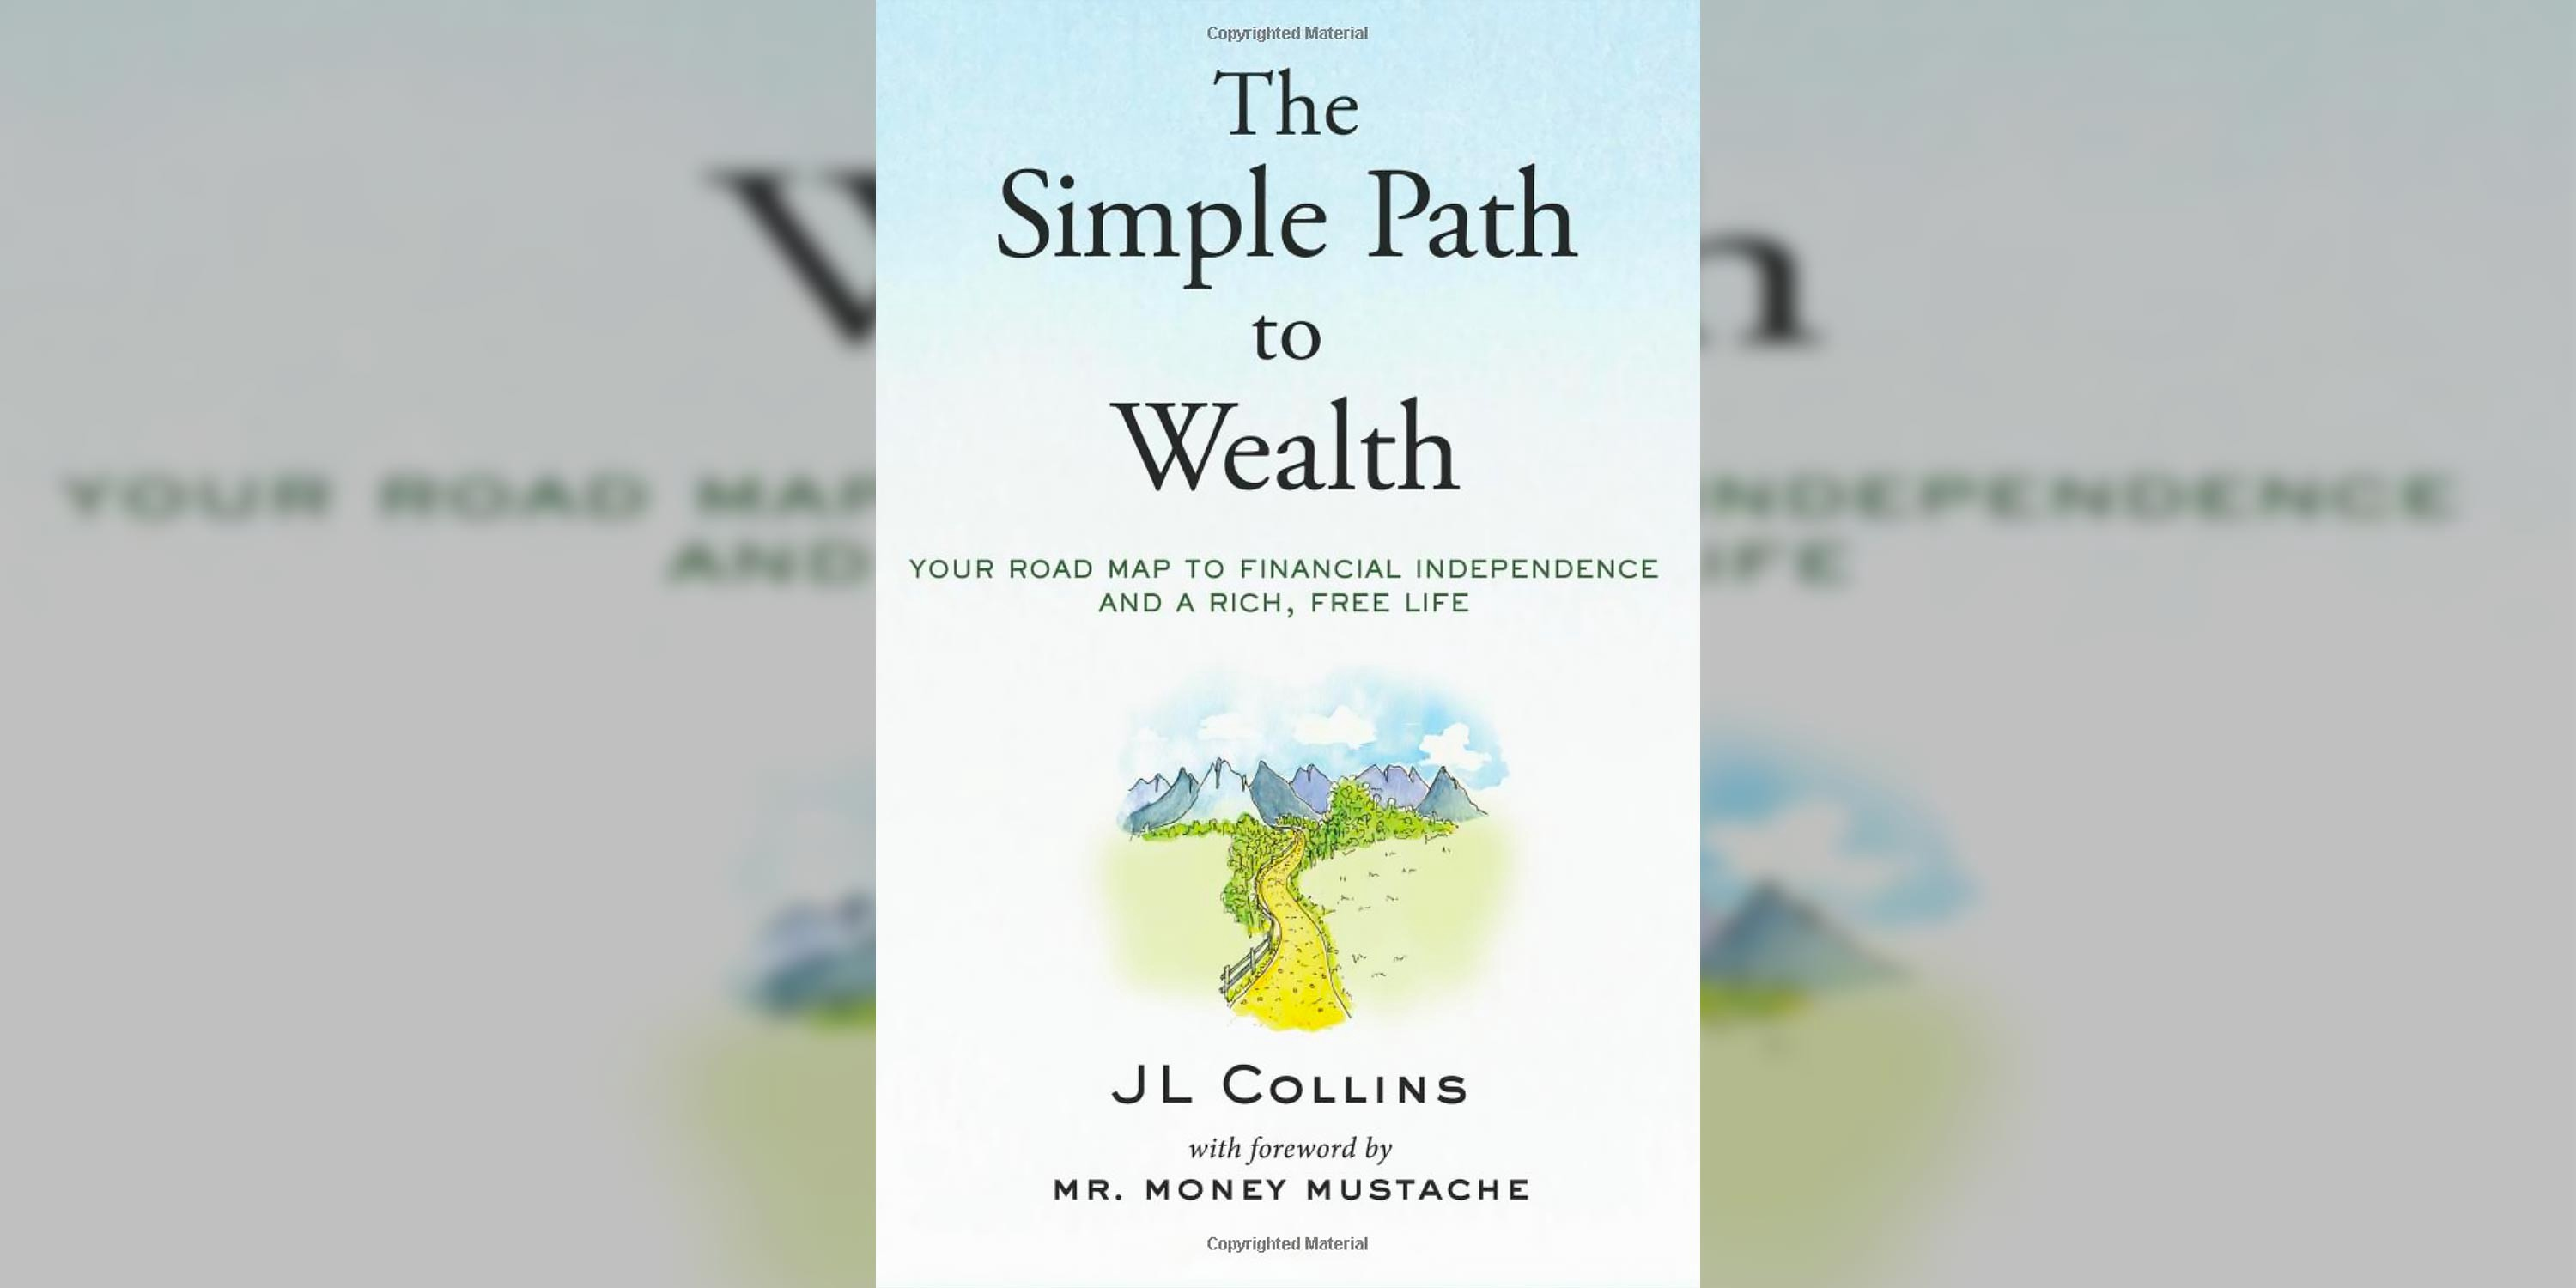 Simple Book cover for The Simple Path to Wealth, showing a drawing of a single path leading into the mountains.